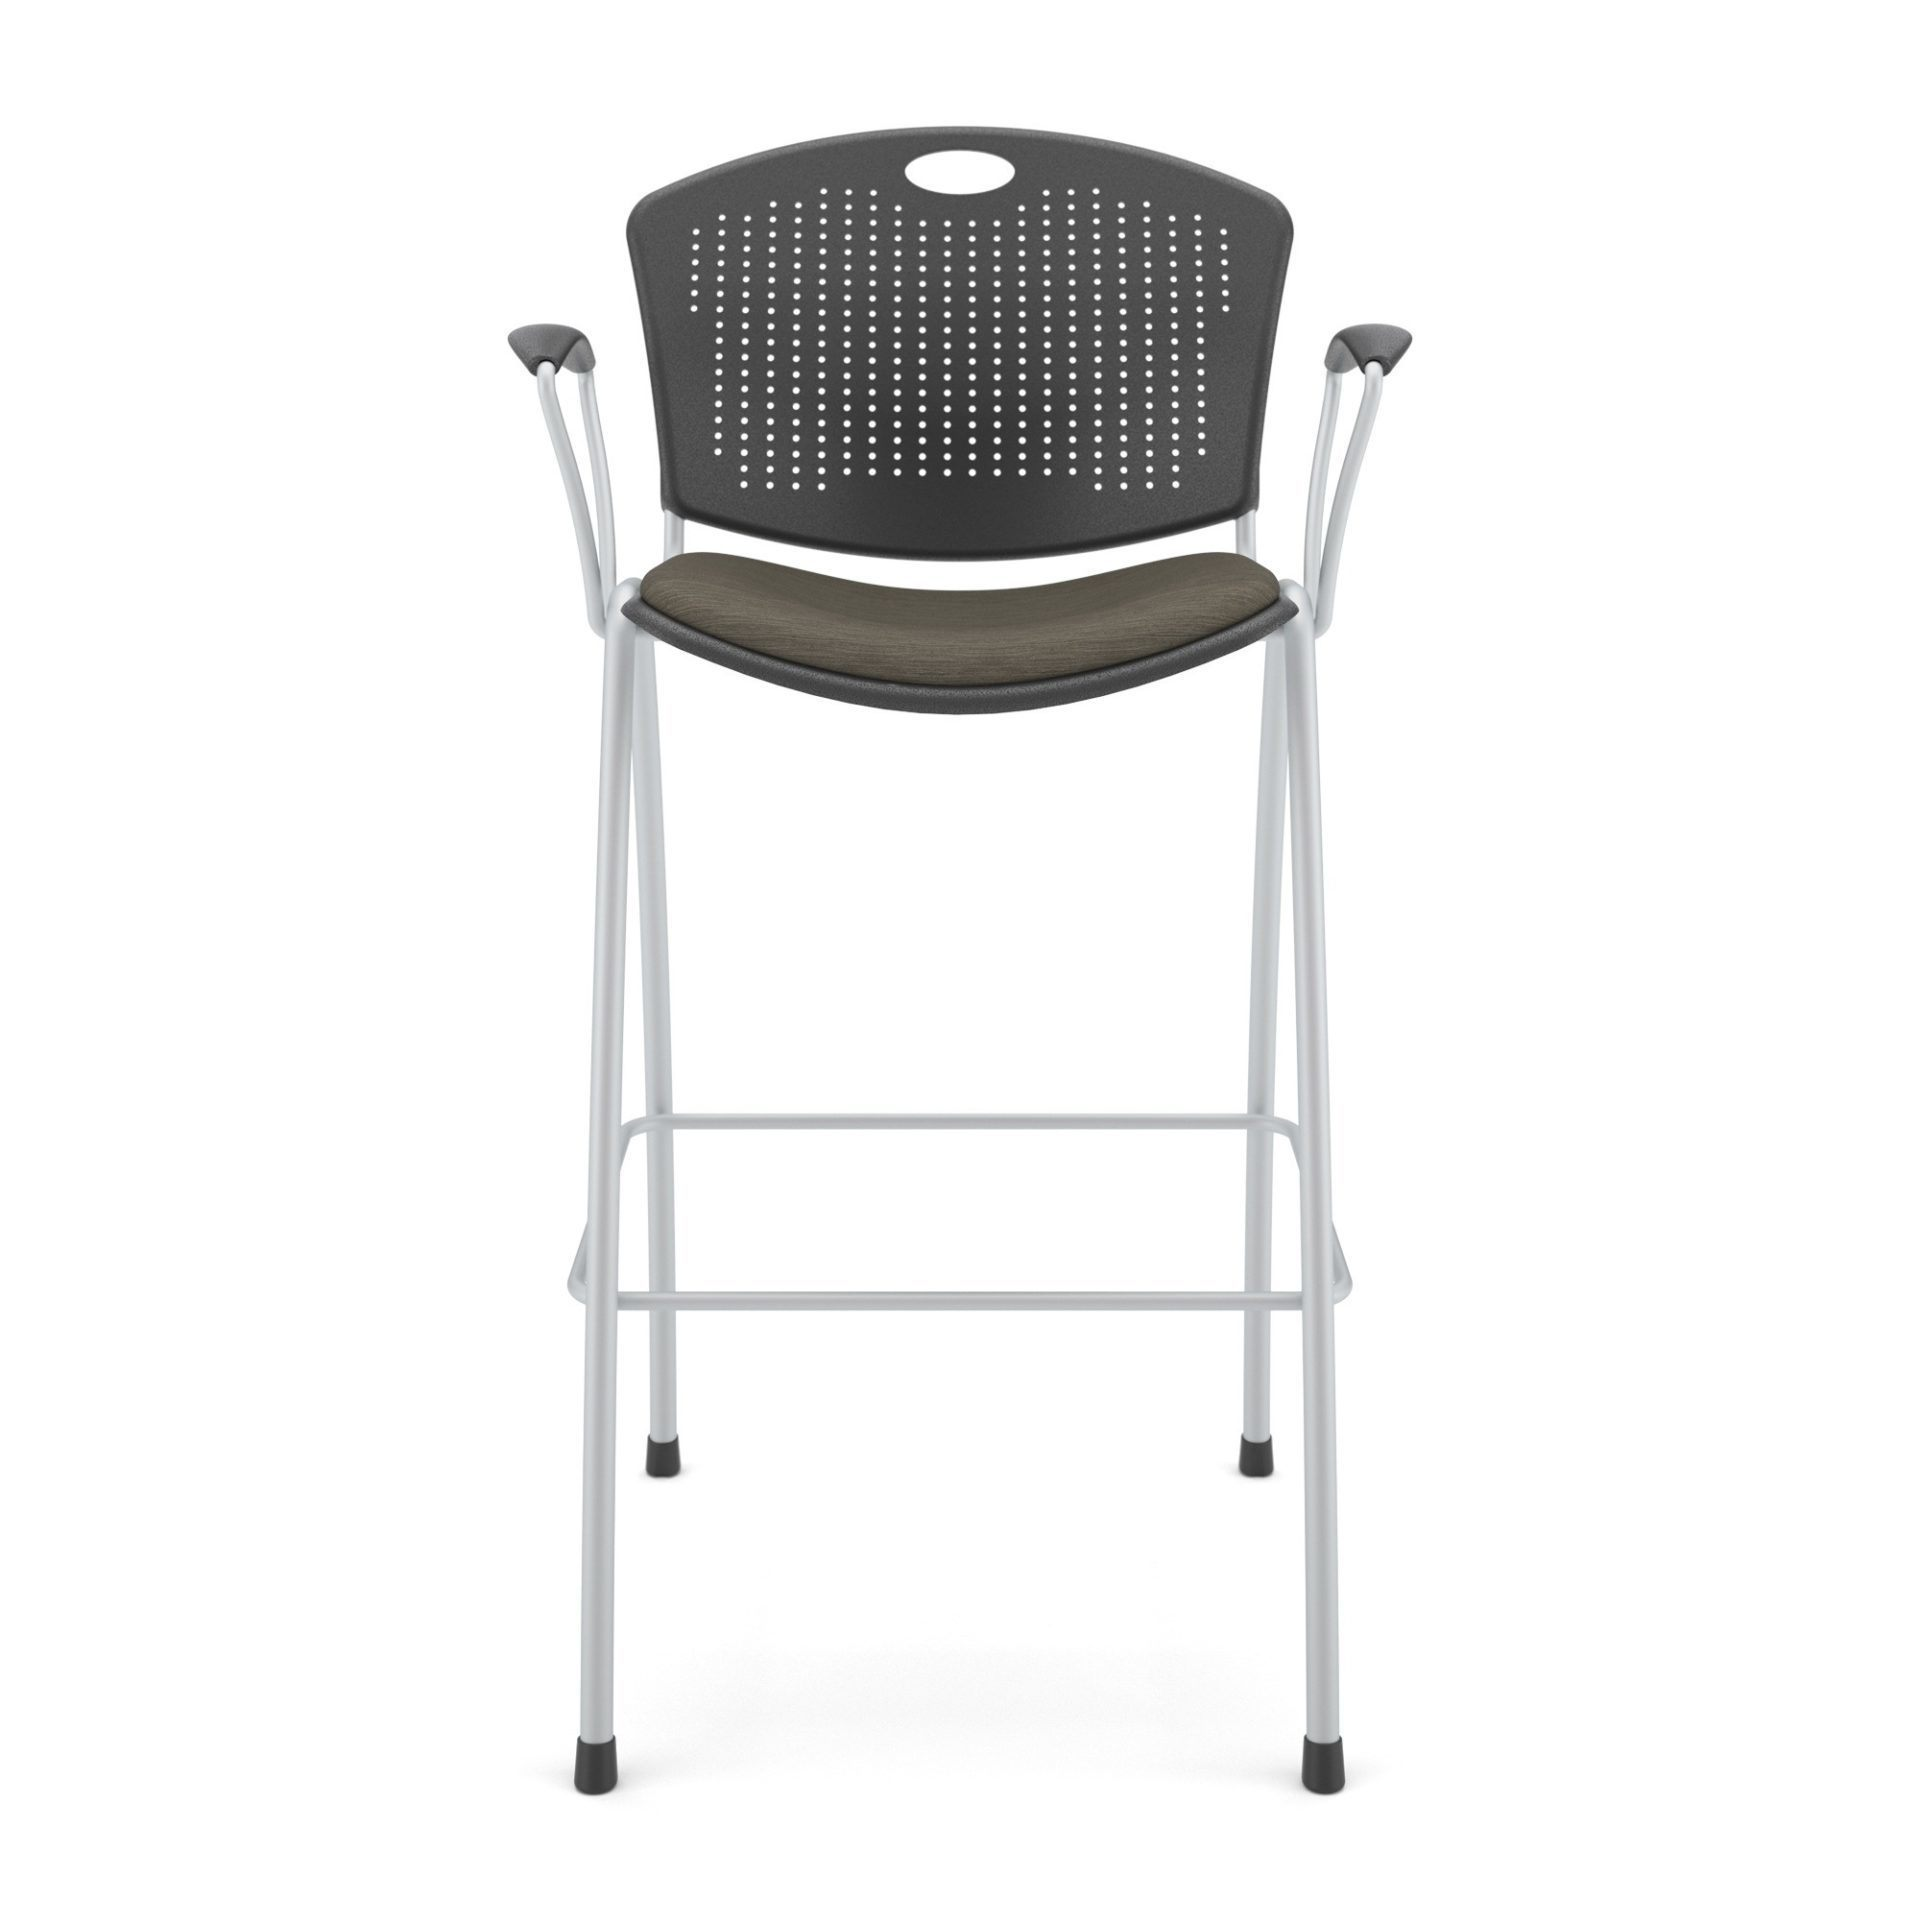 SitOnIt Anytime Cafe Stool